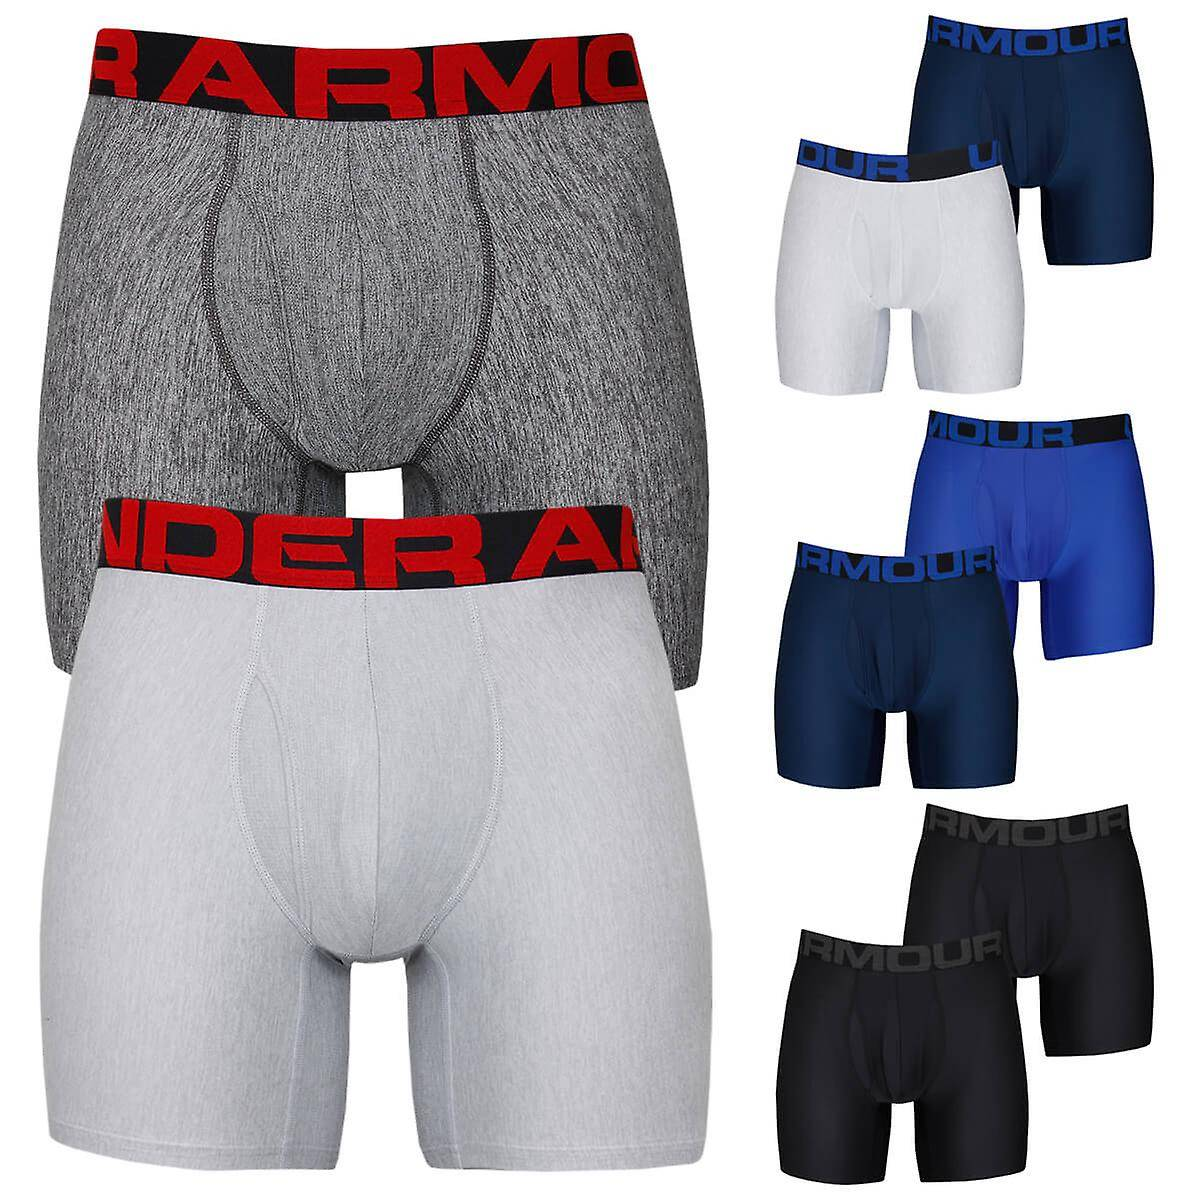 Under Armour Mens 2020 Tech 6in Moisture Wicking 4-Way Stretch (2 Pack) Boxers Noir S